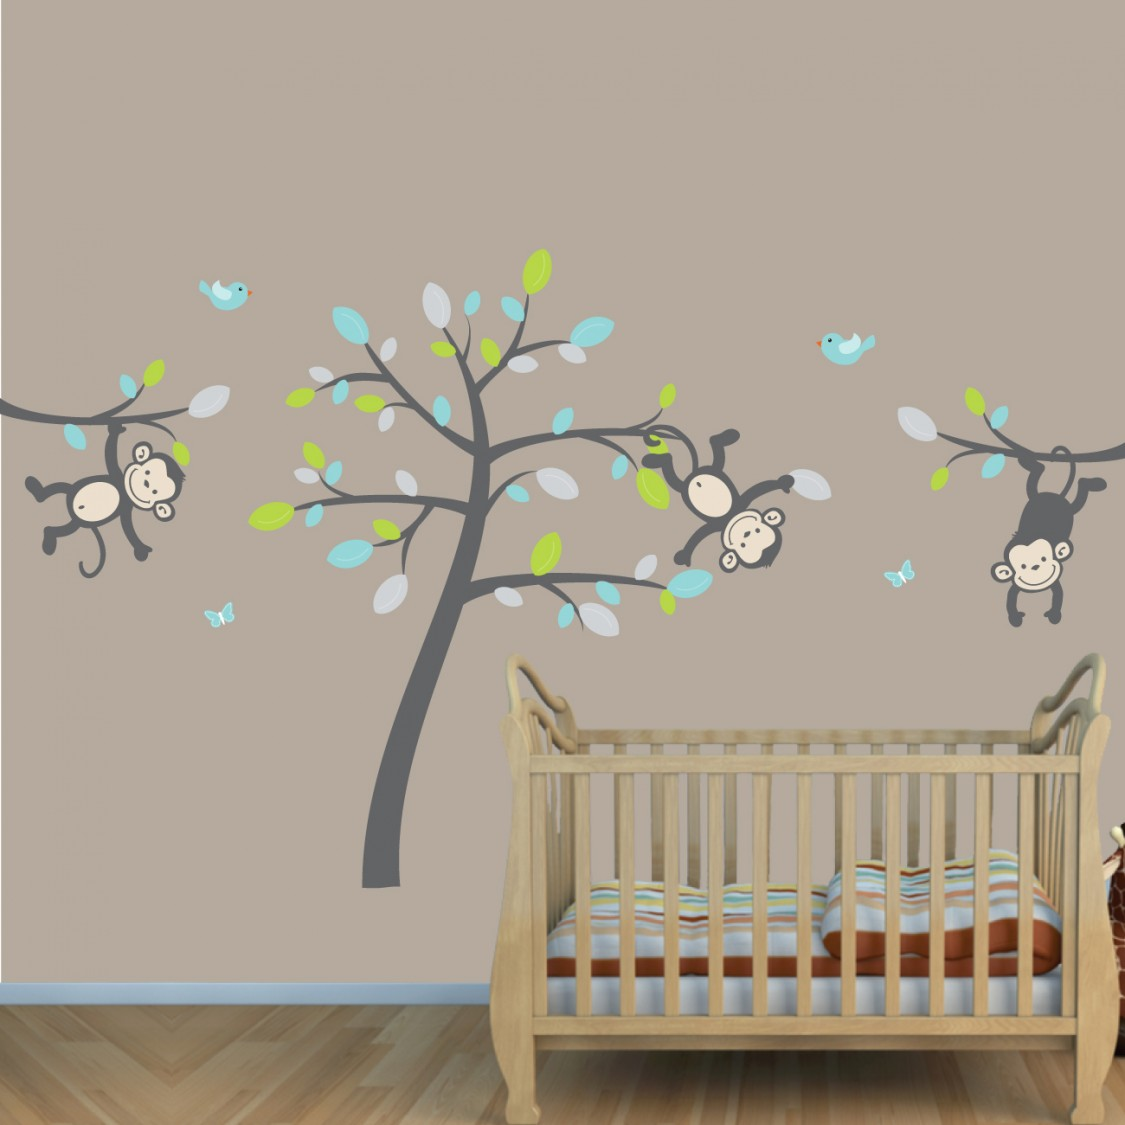 gray jungle nursery wall decals with vine wall decals for kids teal gray jungle nursery wall decals with vine wall decals for kids amipublicfo Choice Image